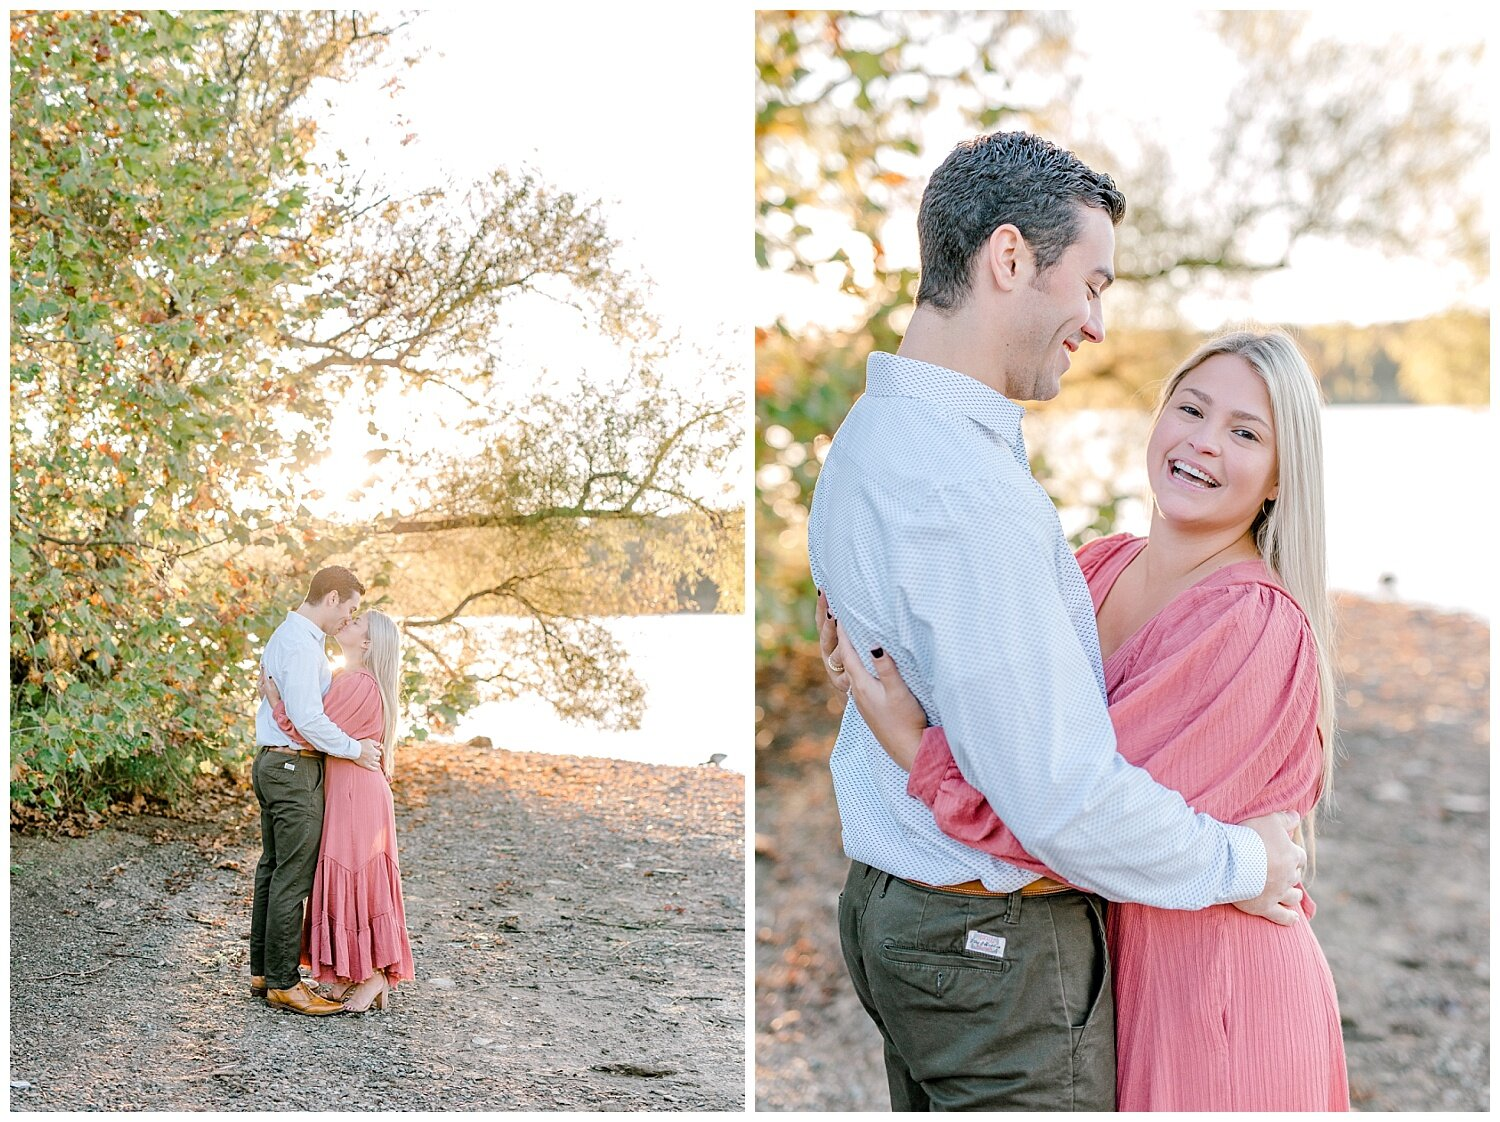 Peace Valley Park Doylestown bucks county PA fall sunrise engagement session  lehigh valley pennsylvania based wedding and lifestyle photographer Jeannie Lytle of Lytle Photography Company_0008.jpg